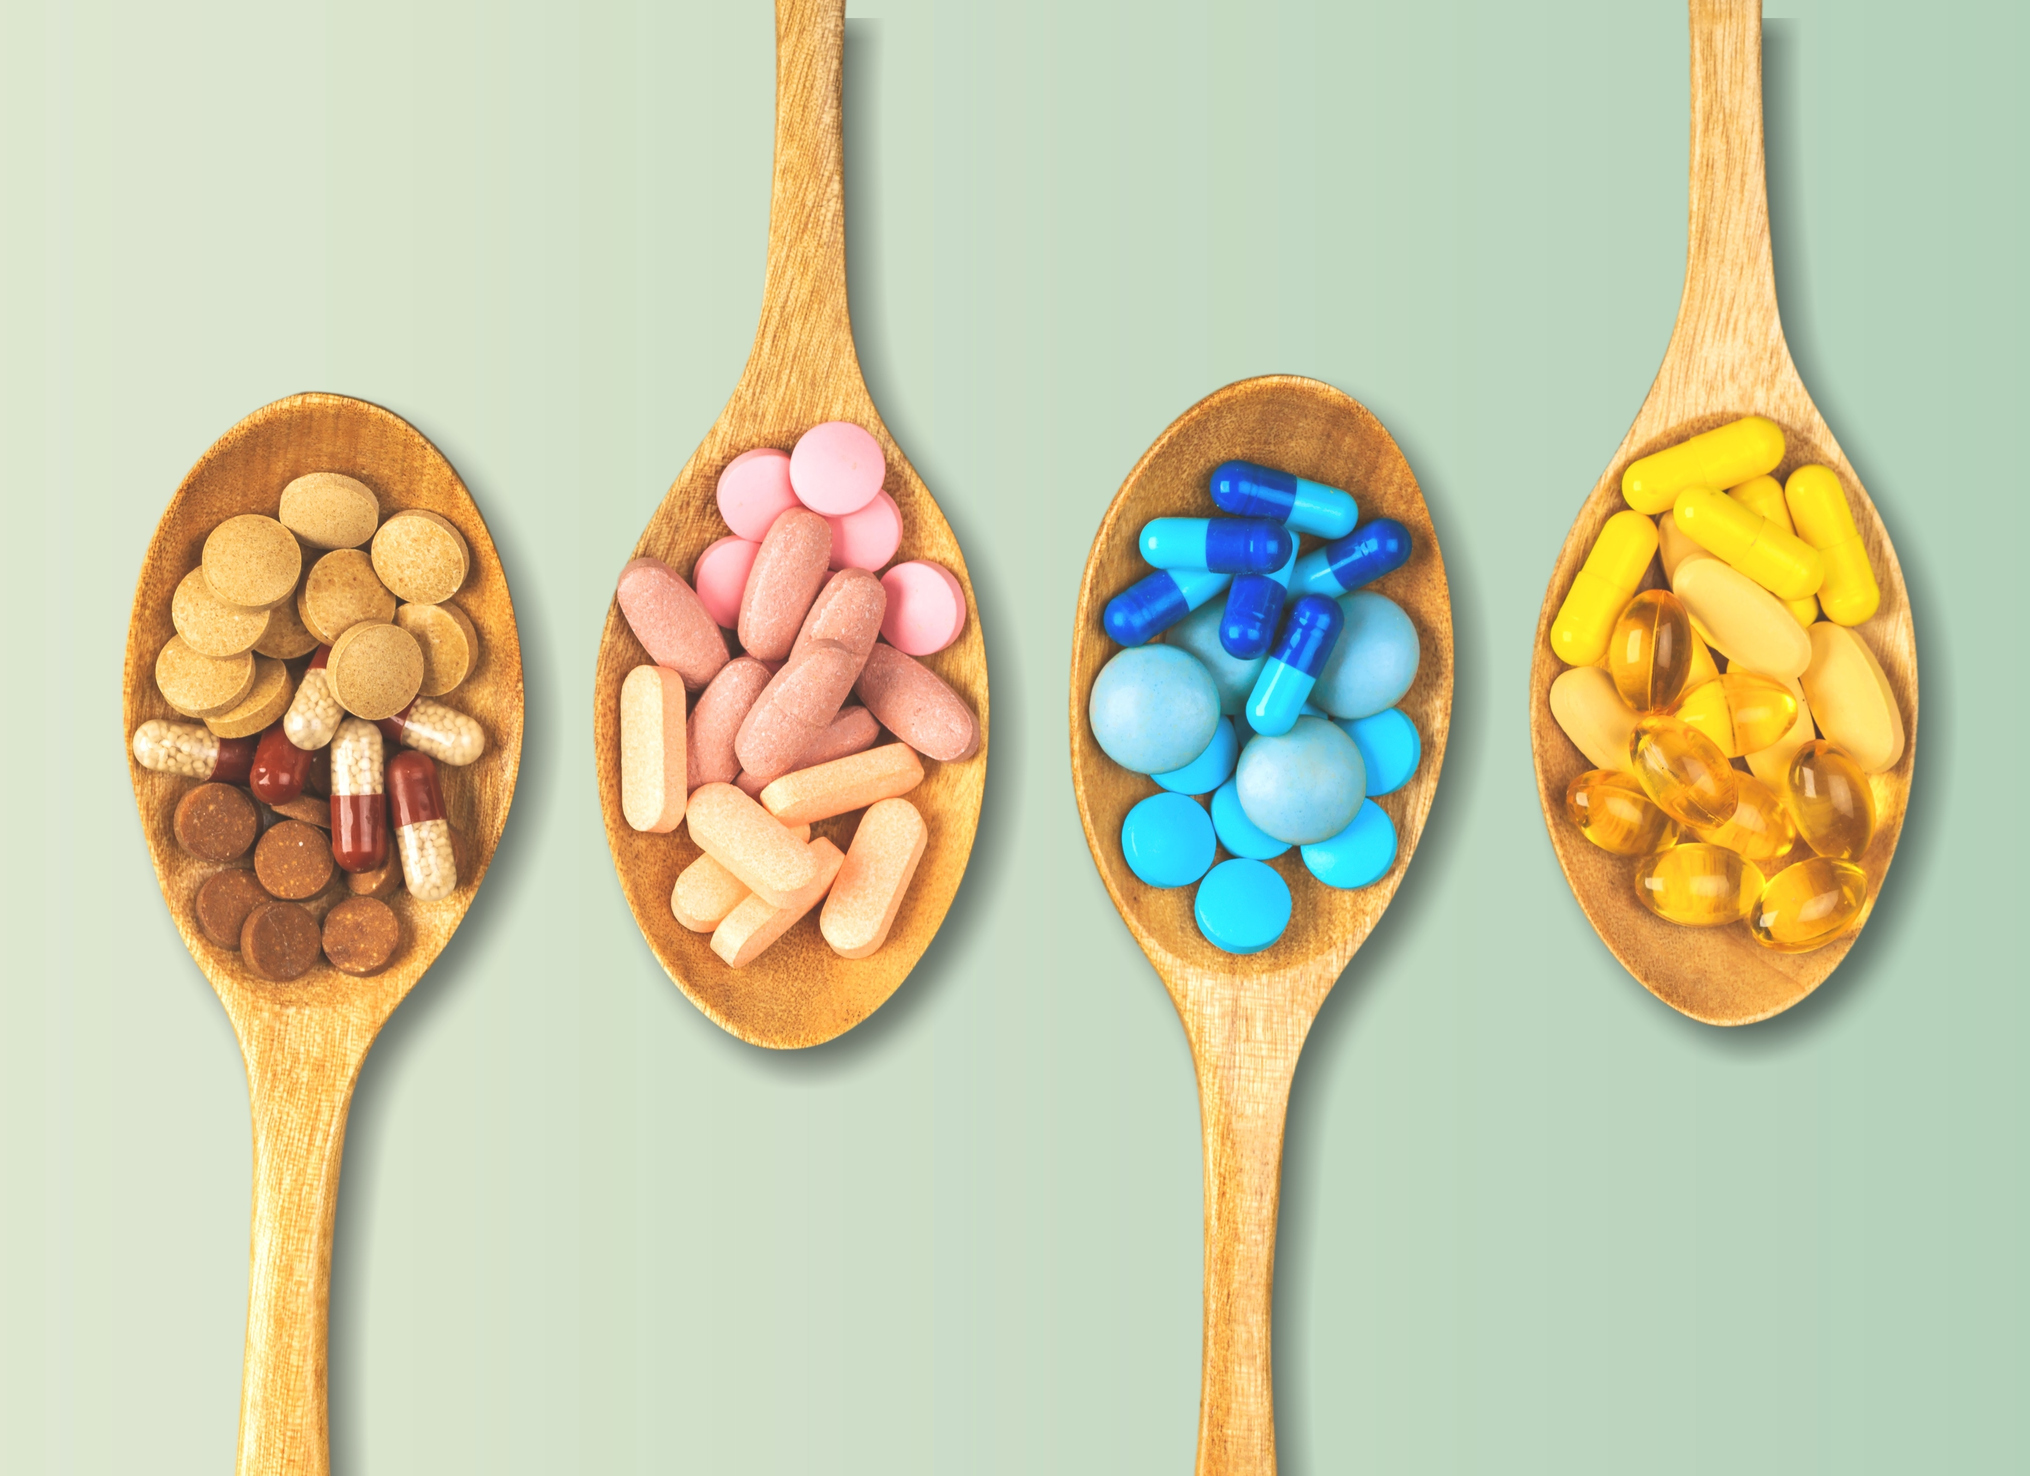 Guide to Choose Best Nootropic Supplement for Health